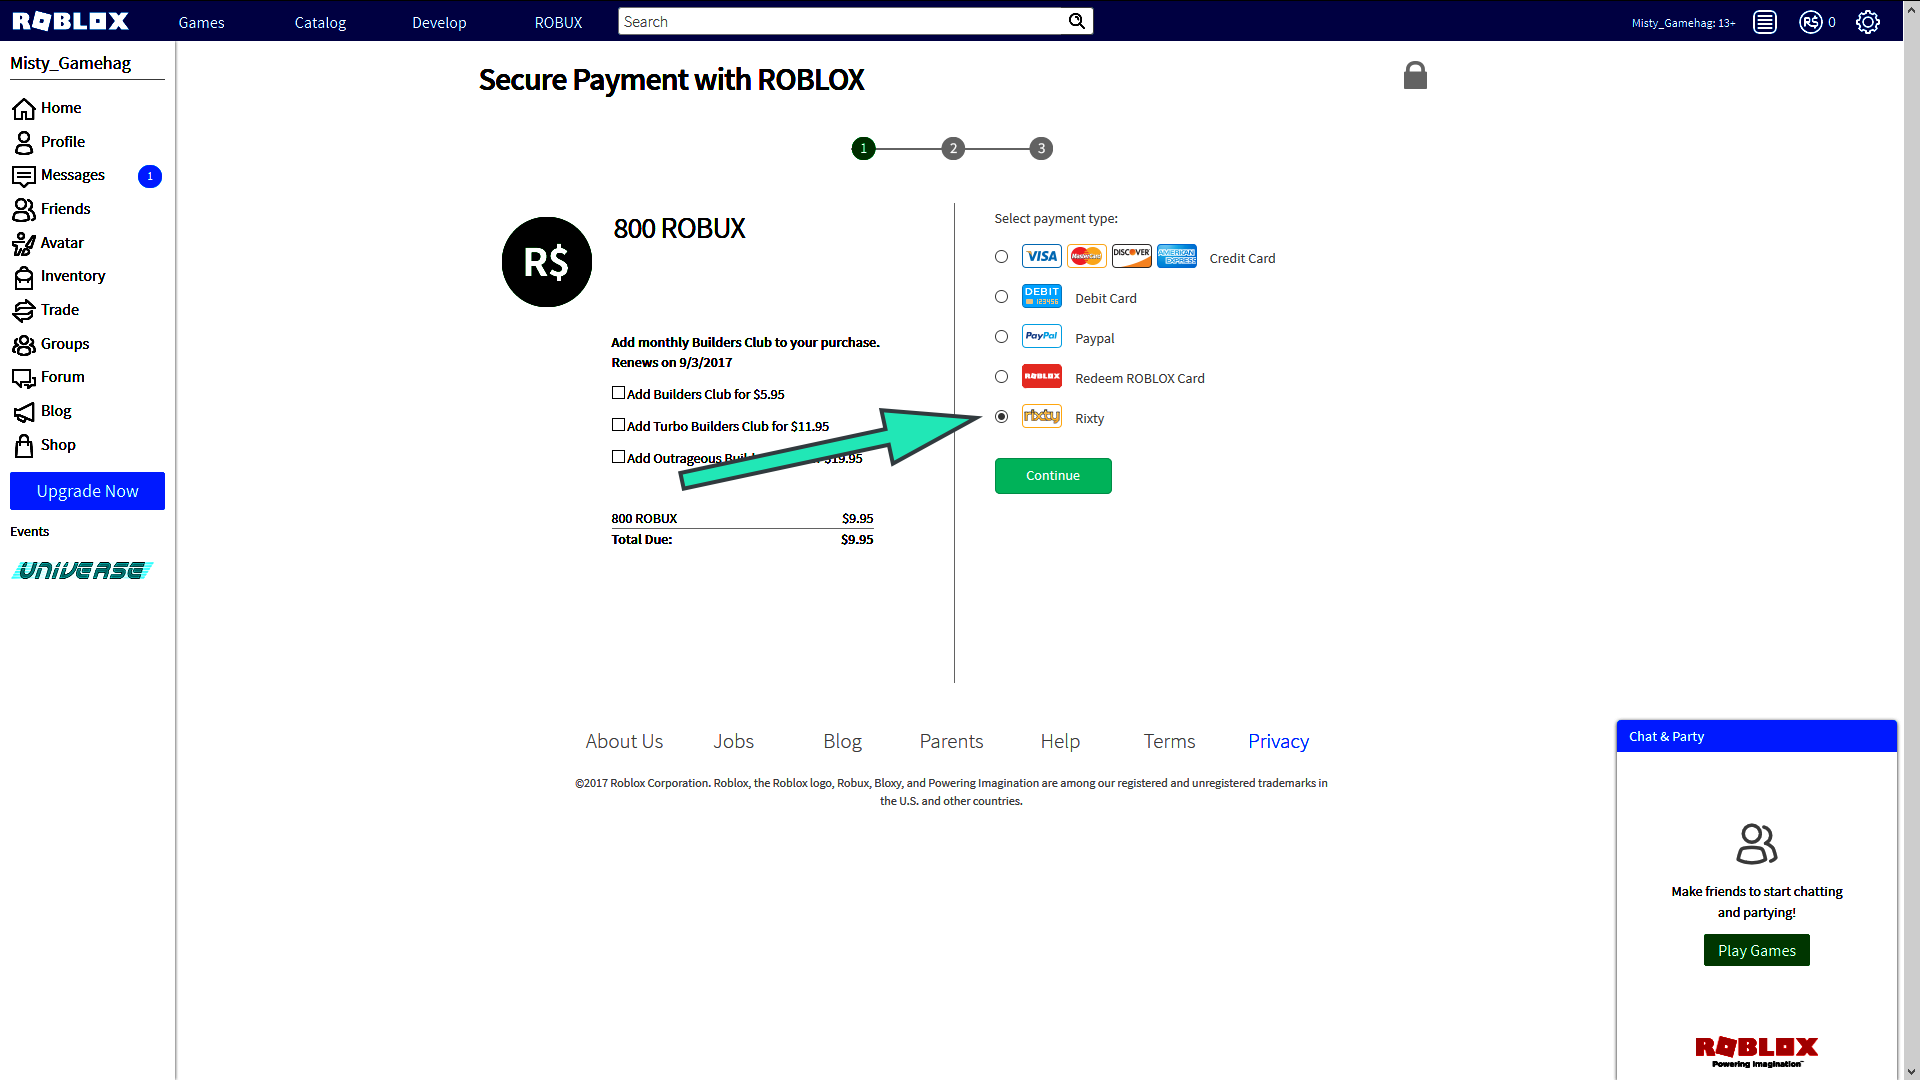 How to buy ROBUX in Roblox with a paysafecard? | Gamehag